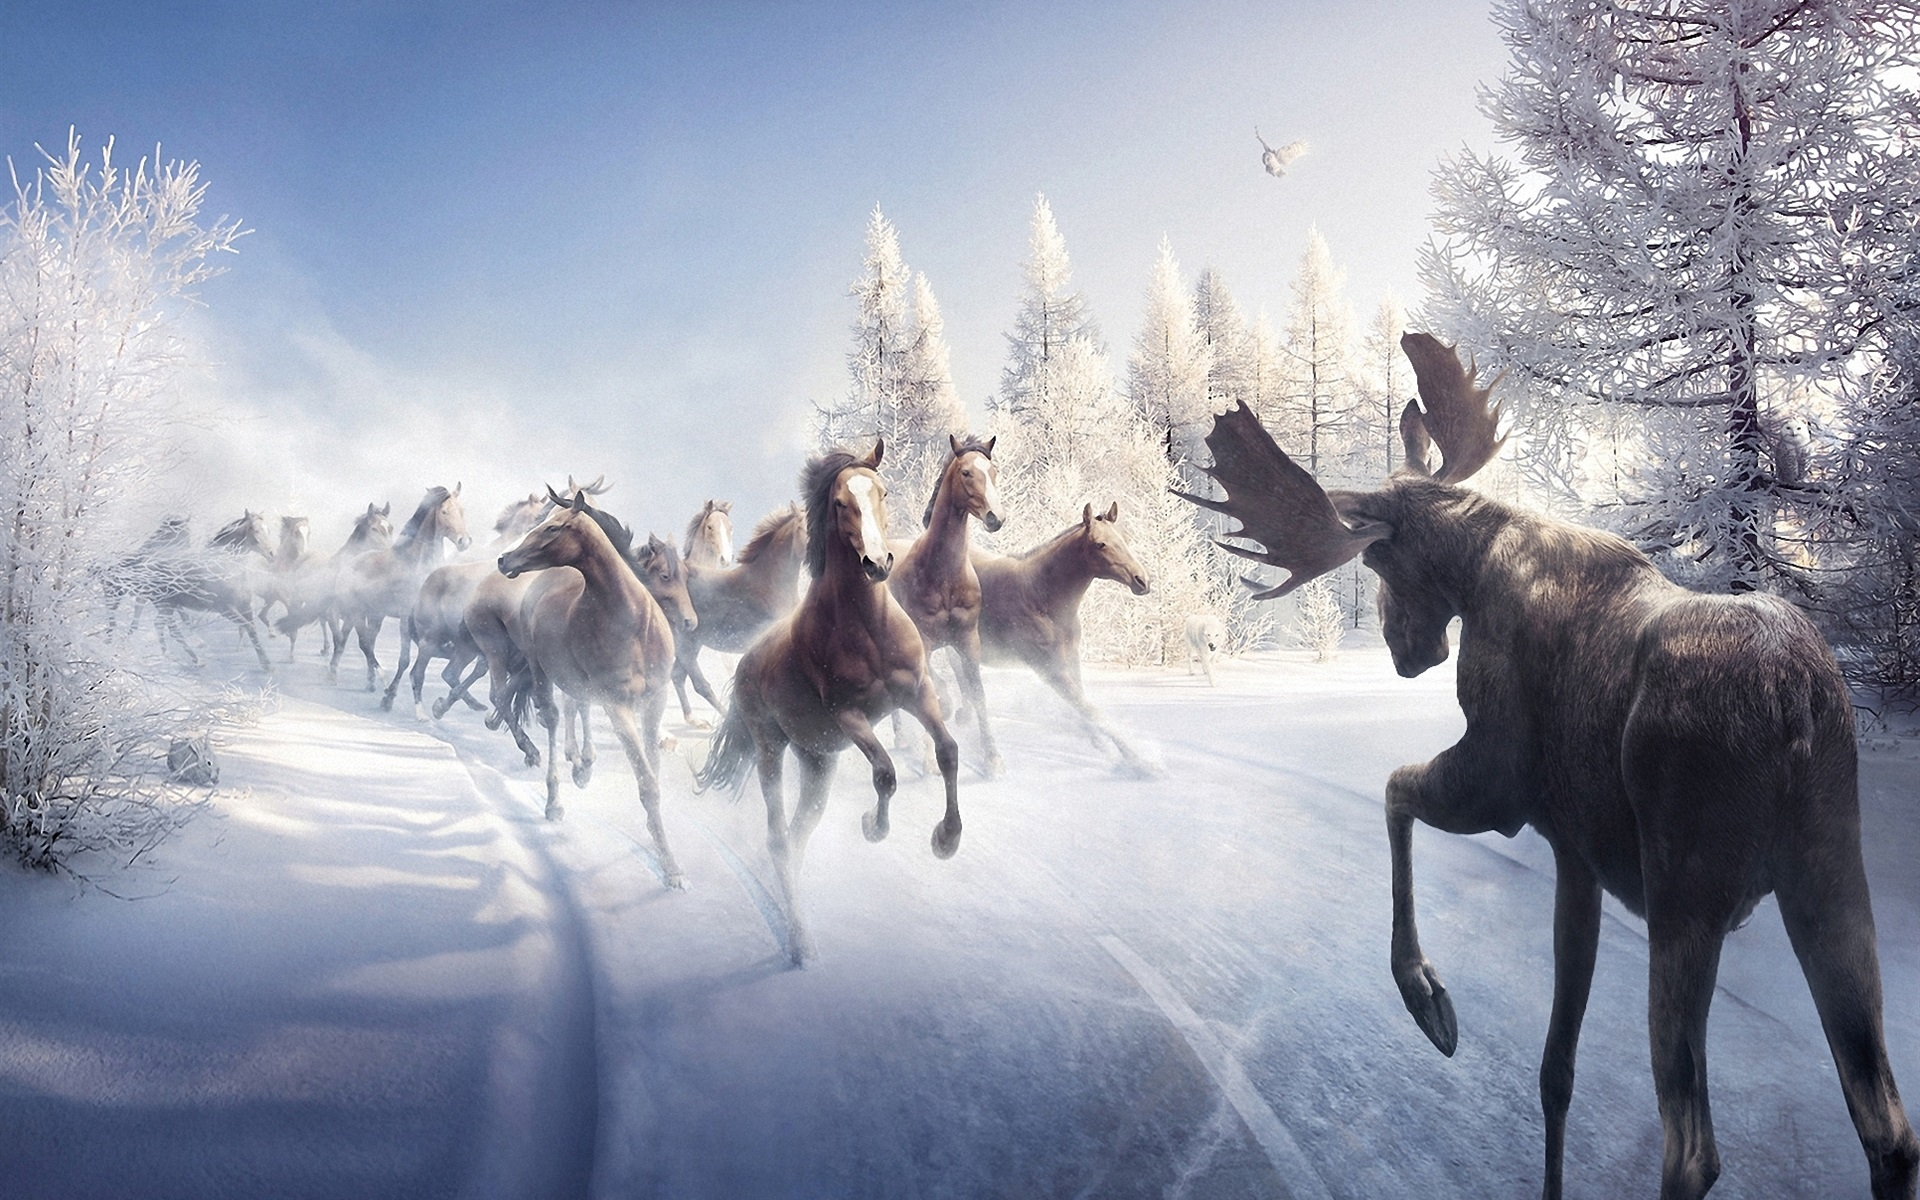 Wallpaper Horses In Winter Running 1920x1200 Hd Picture Image